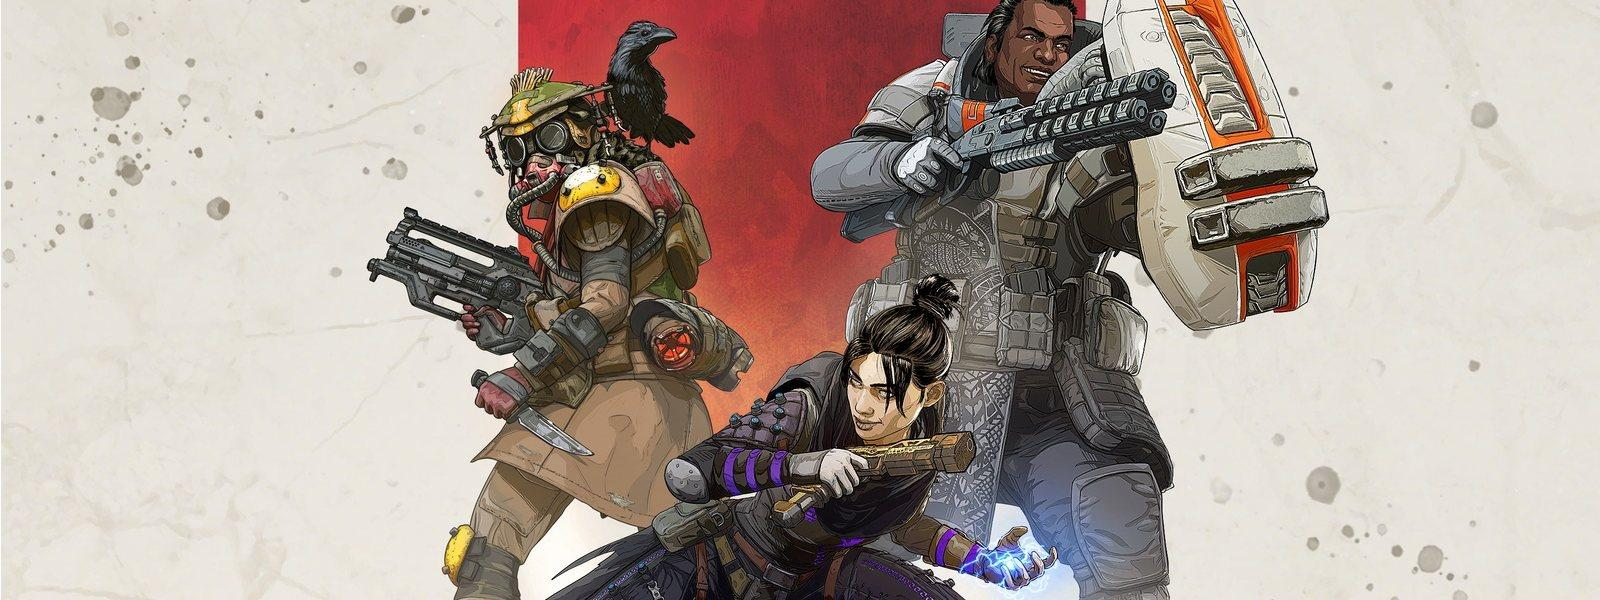 How To Win at Apex Legends: Tips for Total Domination